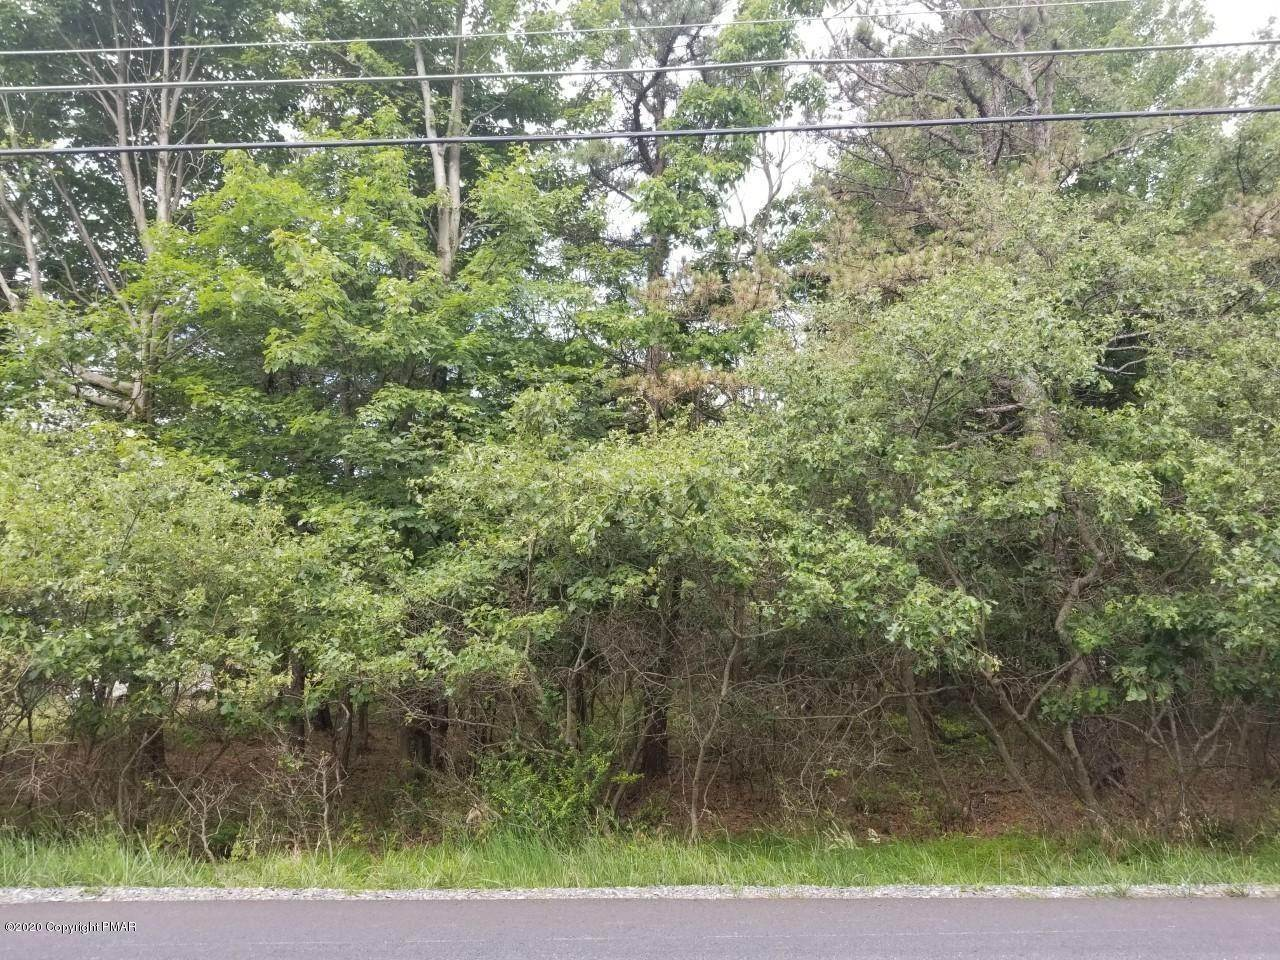 Land for Sale at D2028 Penn Forest Trl Albrightsville, Pennsylvania 18210 United States